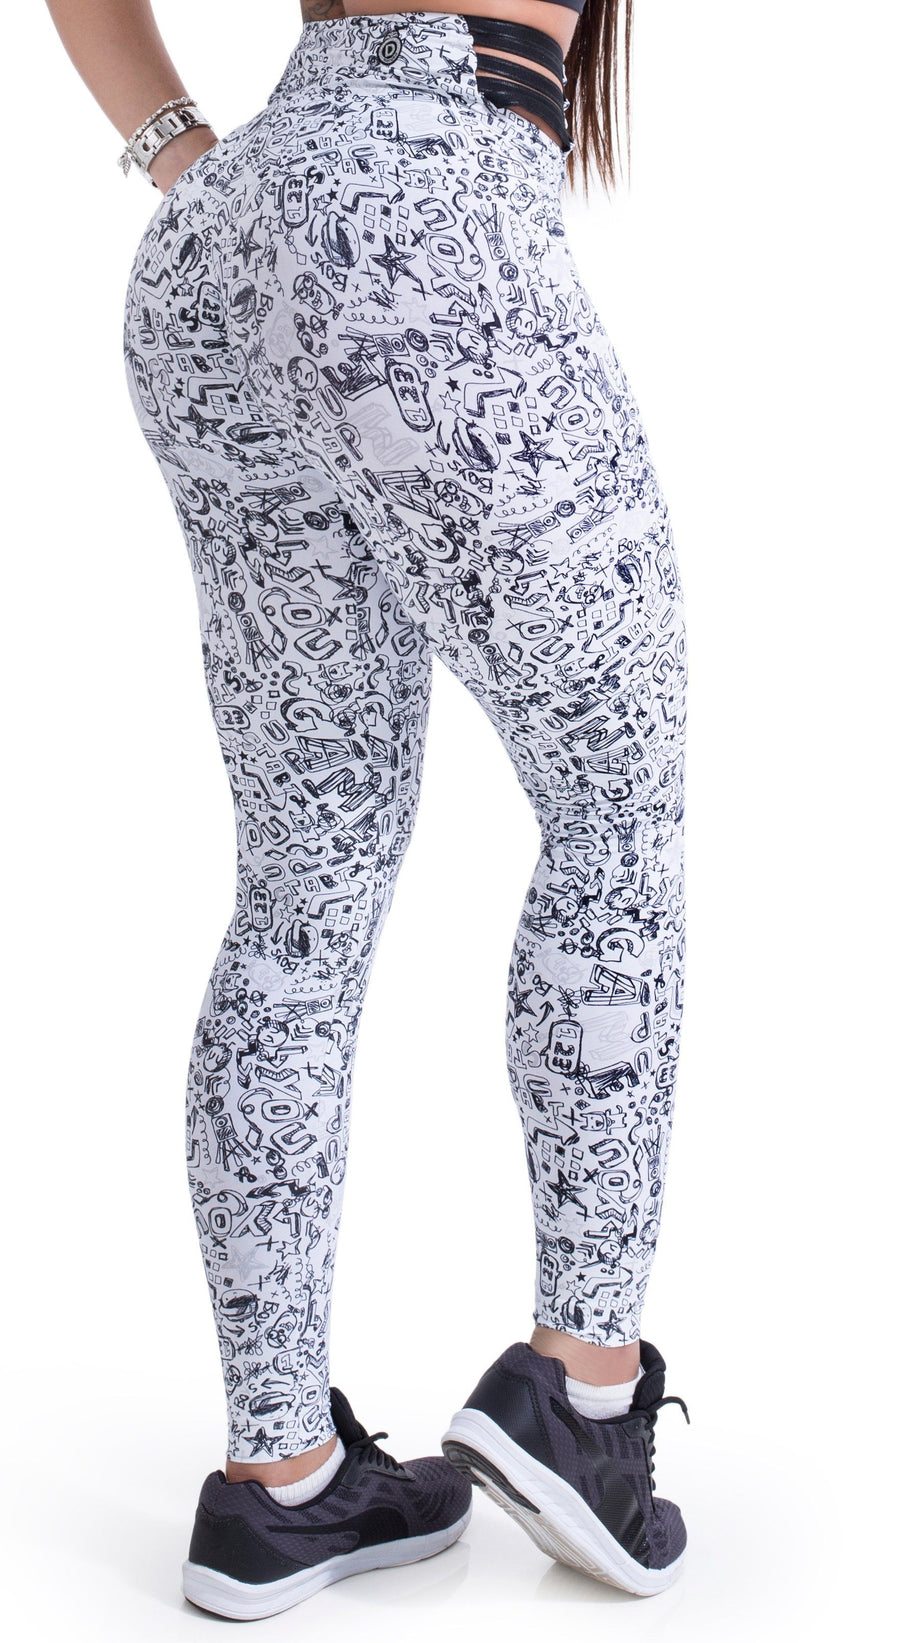 Workout Legging -  Strappy Fun Print